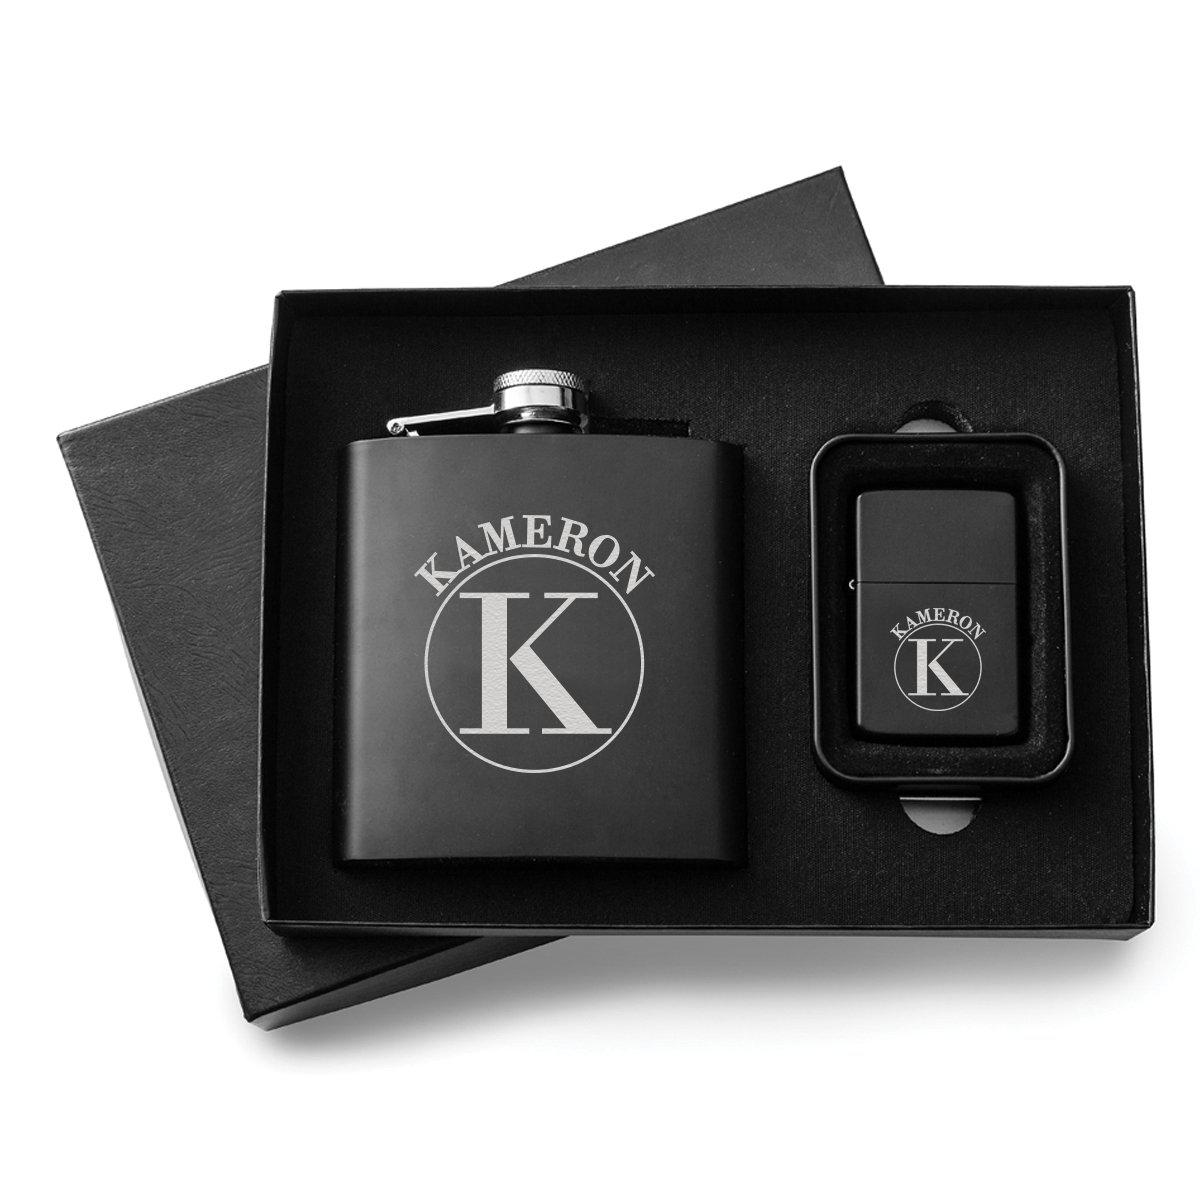 Personalized Flasks - Personalized Lighters - Gift Set